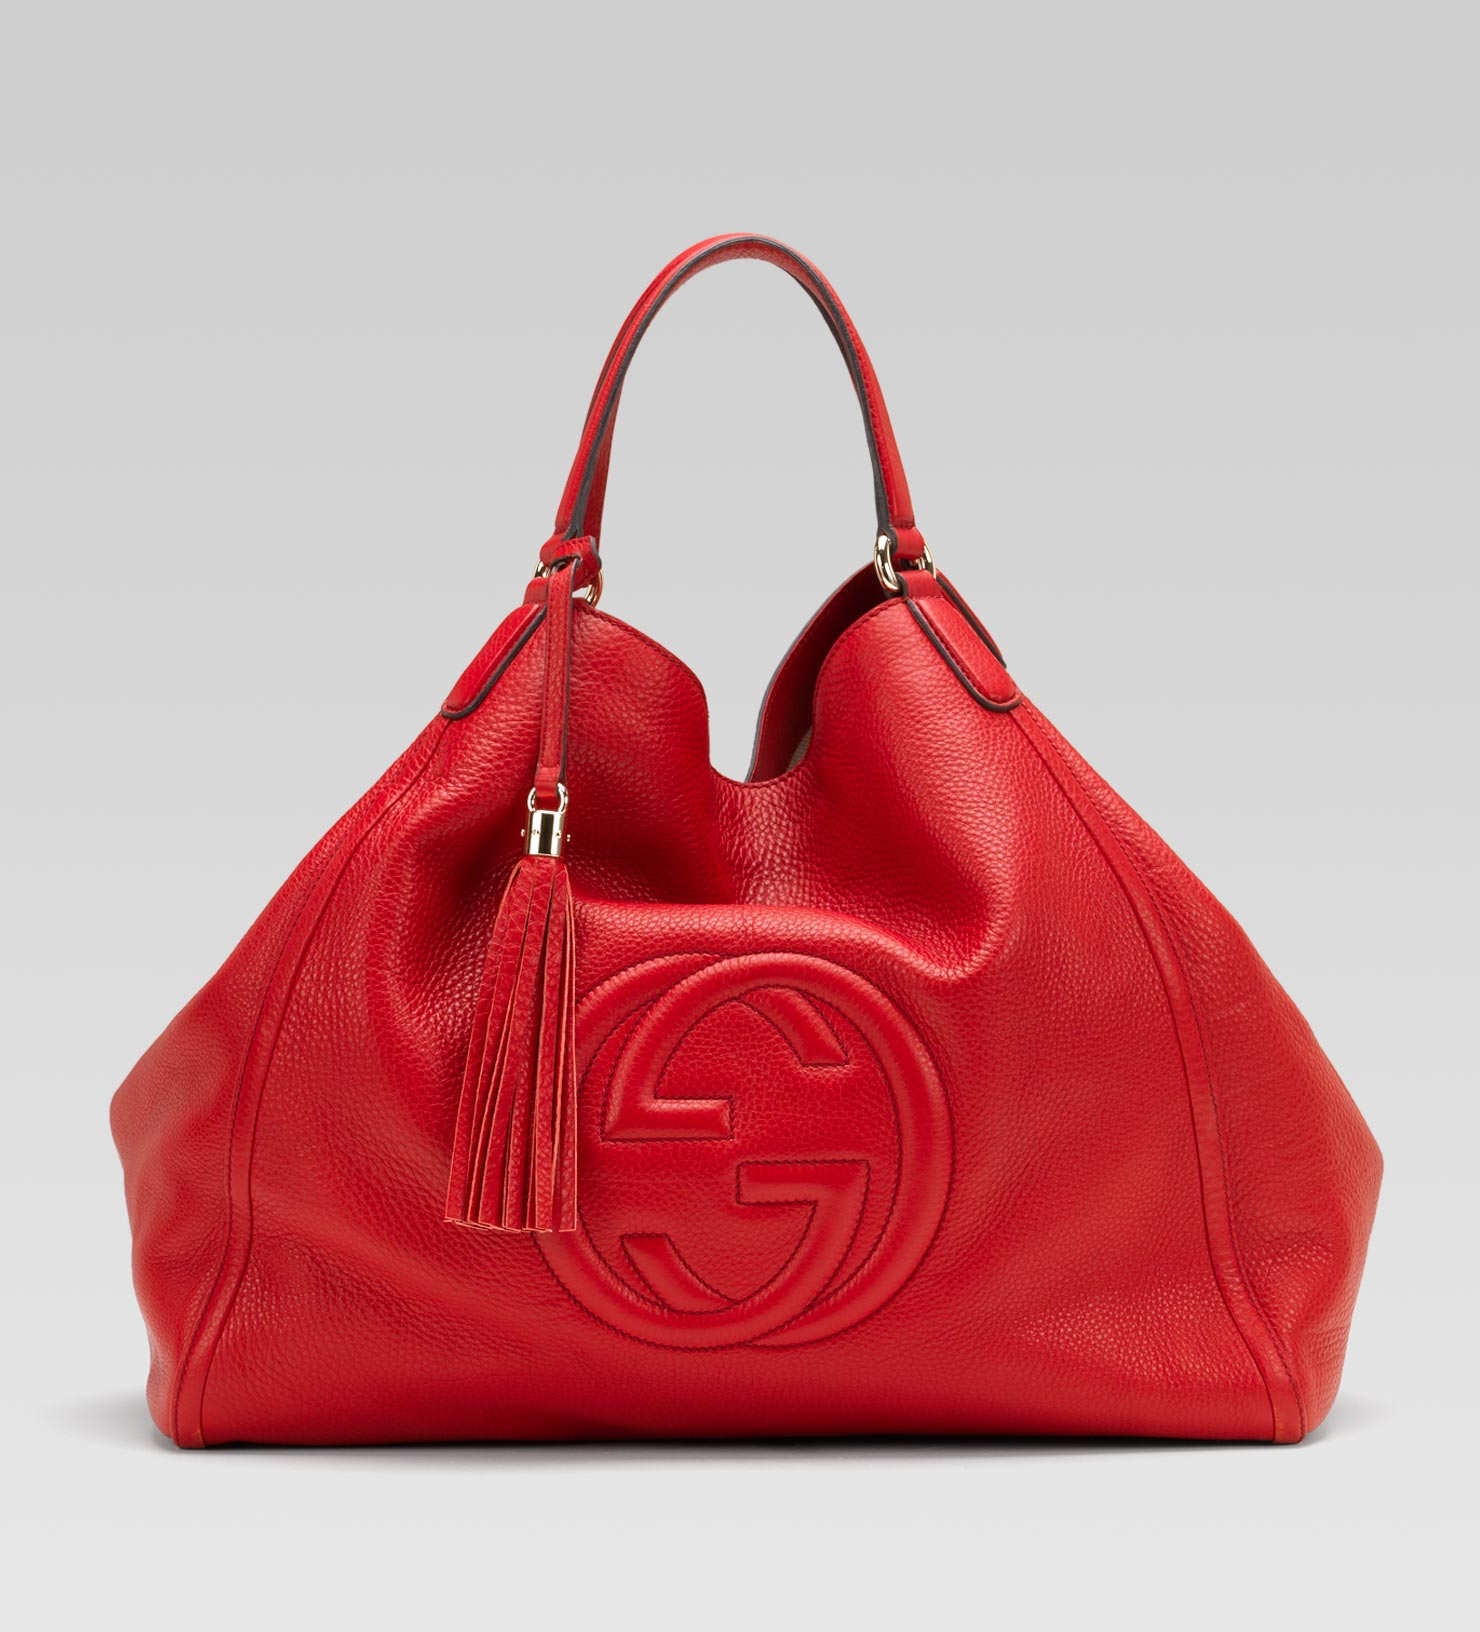 gucci soho leather shoulder bag in red lyst. Black Bedroom Furniture Sets. Home Design Ideas